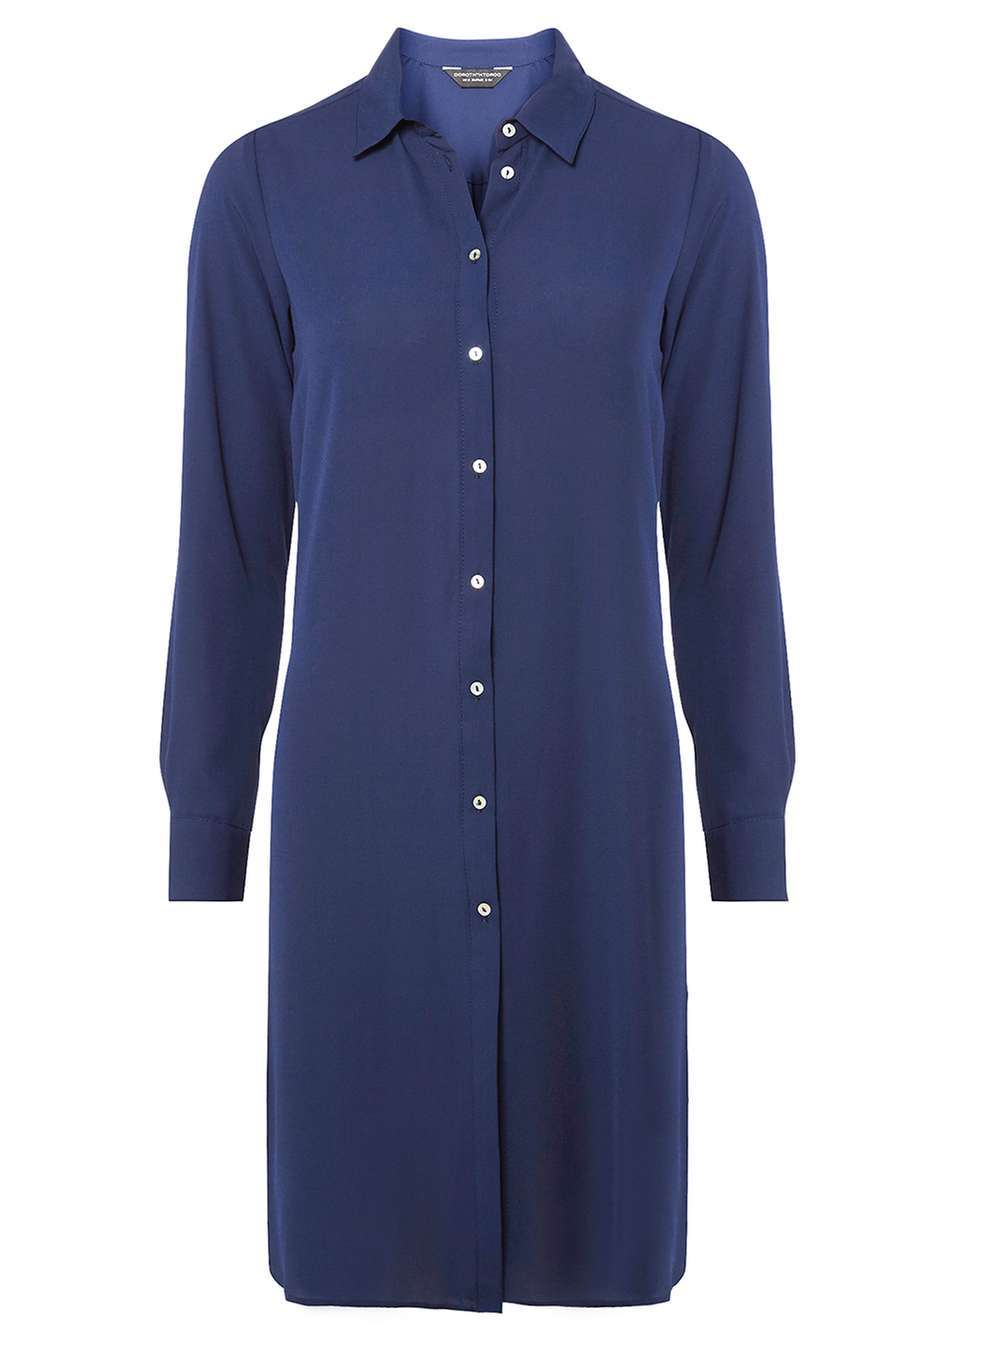 Womens Navy Maxi Split Shirt Blue - neckline: shirt collar/peter pan/zip with opening; pattern: plain; style: shirt; predominant colour: navy; occasions: casual; fibres: polyester/polyamide - 100%; fit: body skimming; length: mid thigh; sleeve length: long sleeve; sleeve style: standard; pattern type: fabric; texture group: other - light to midweight; wardrobe: basic; season: a/w 2016